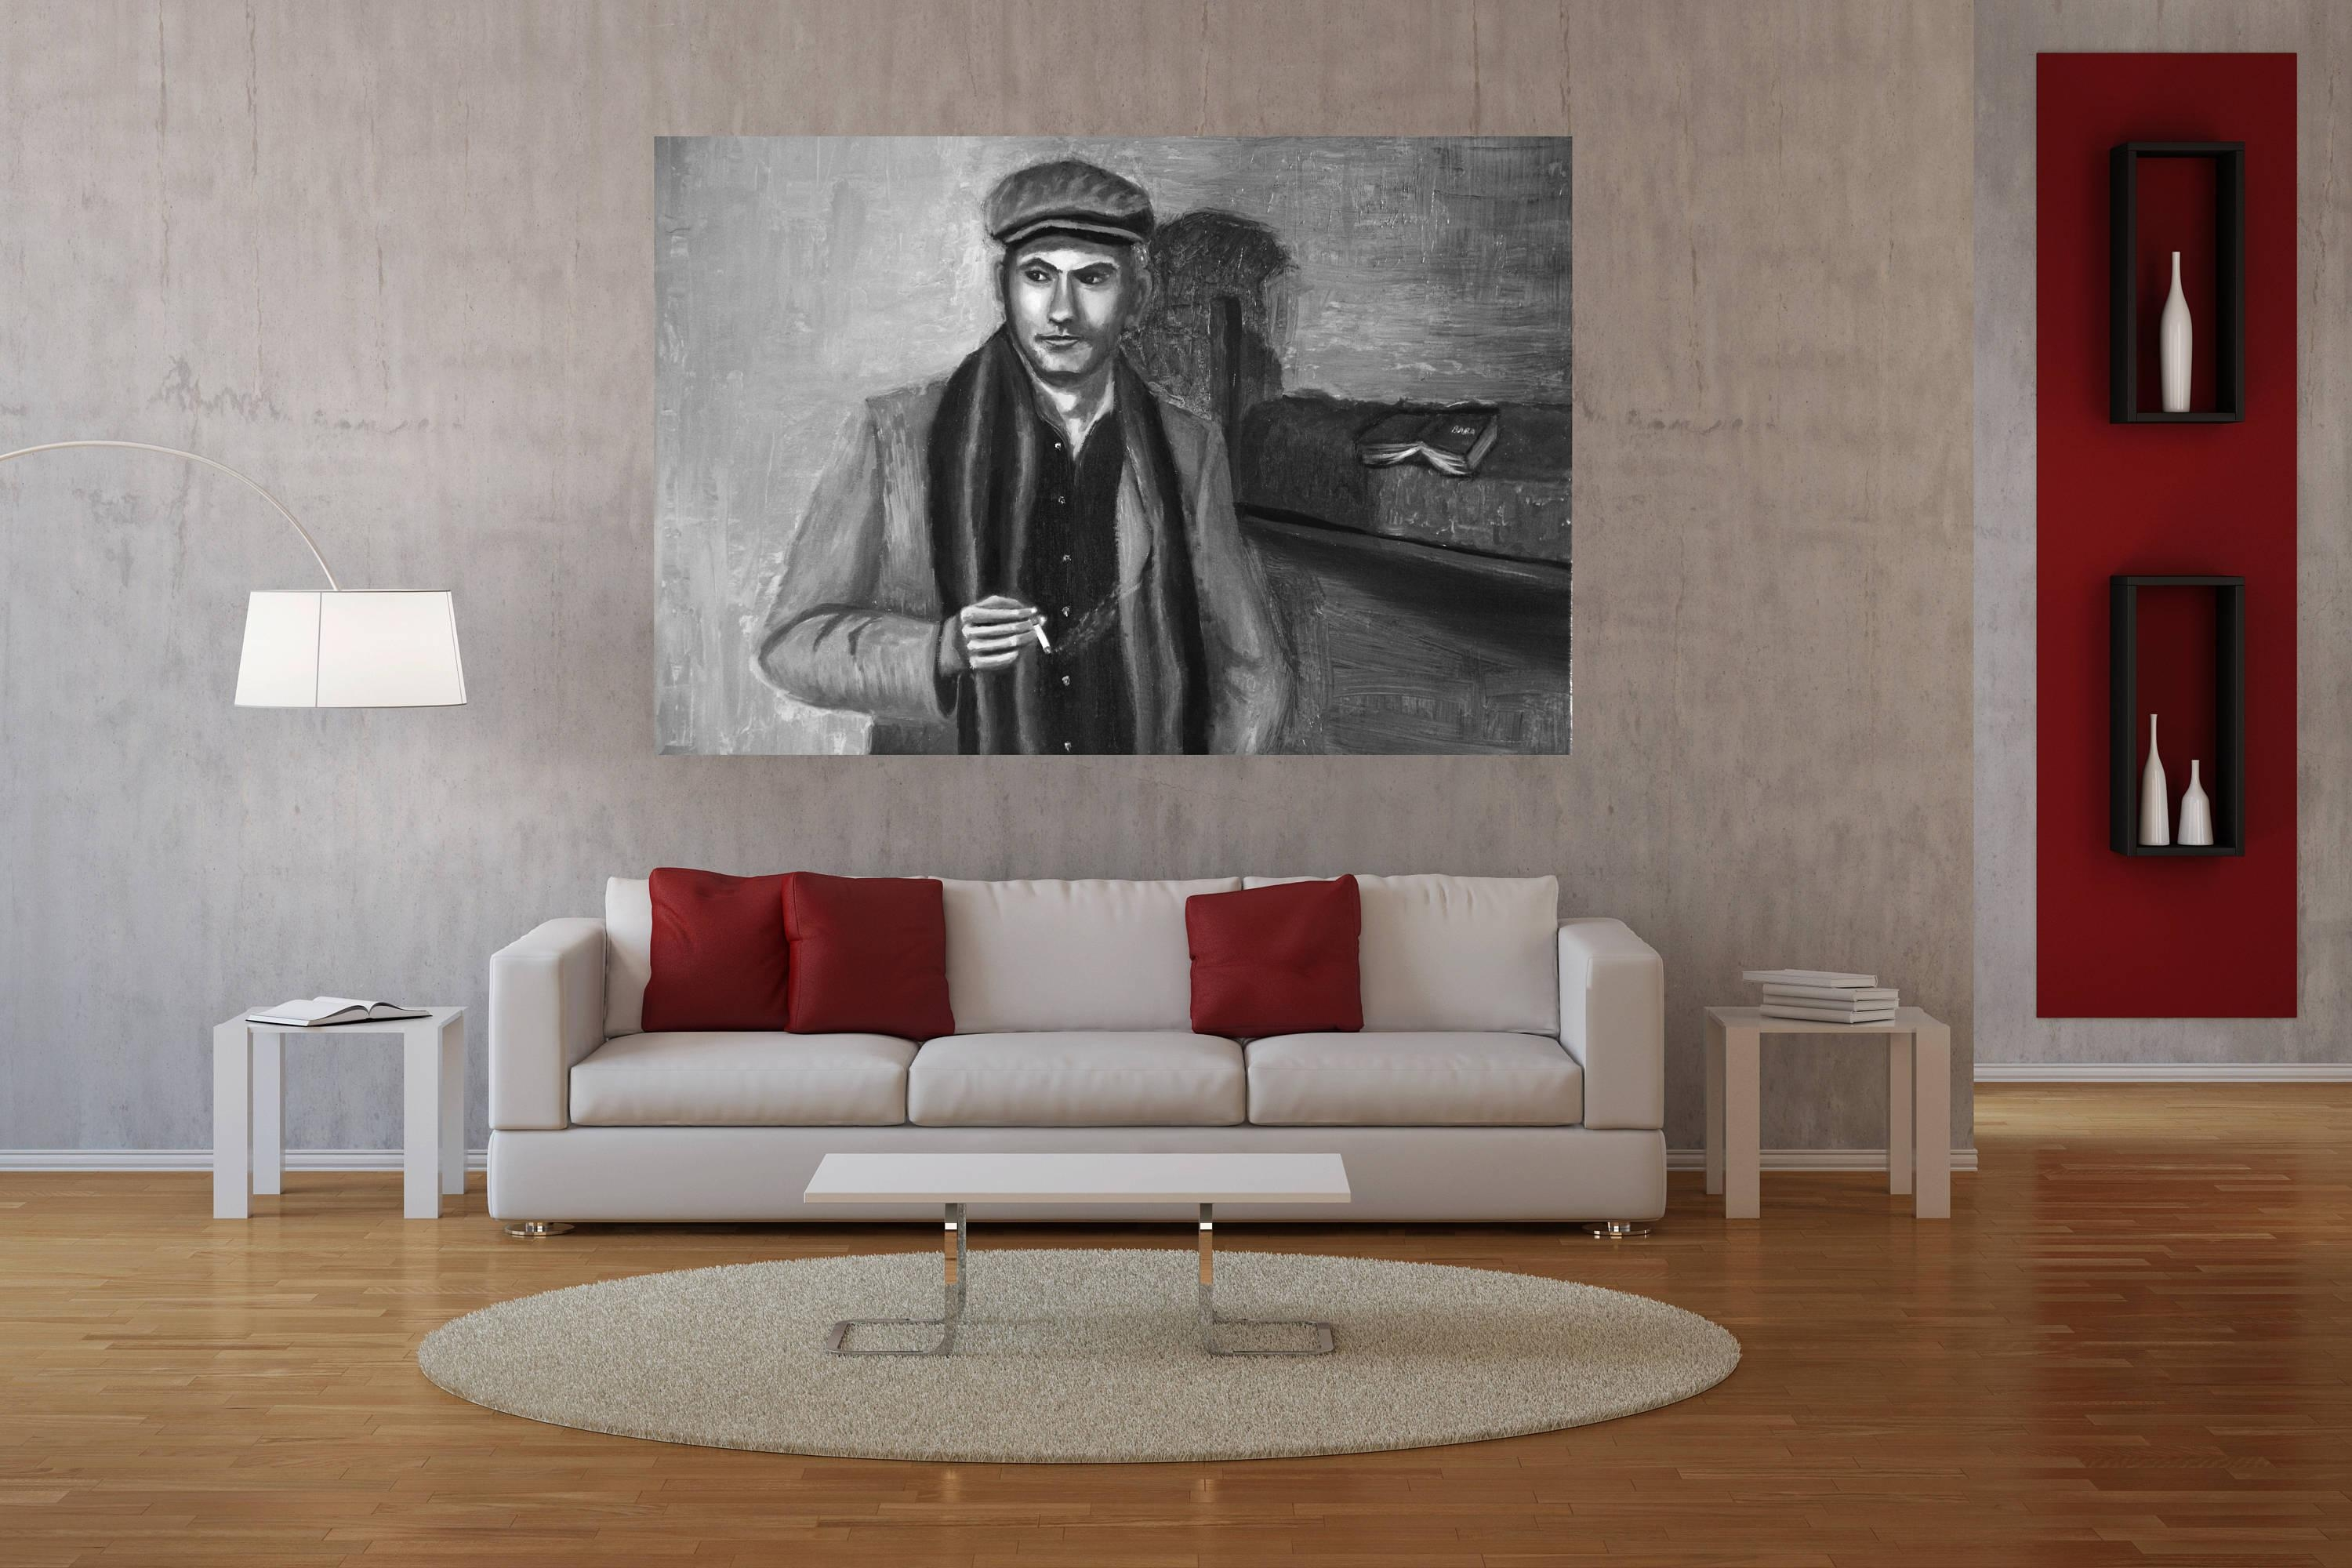 Large Black And White Wall Art,man Portrait Painting,wall Art With Regard To Large White Wall Art (View 12 of 21)